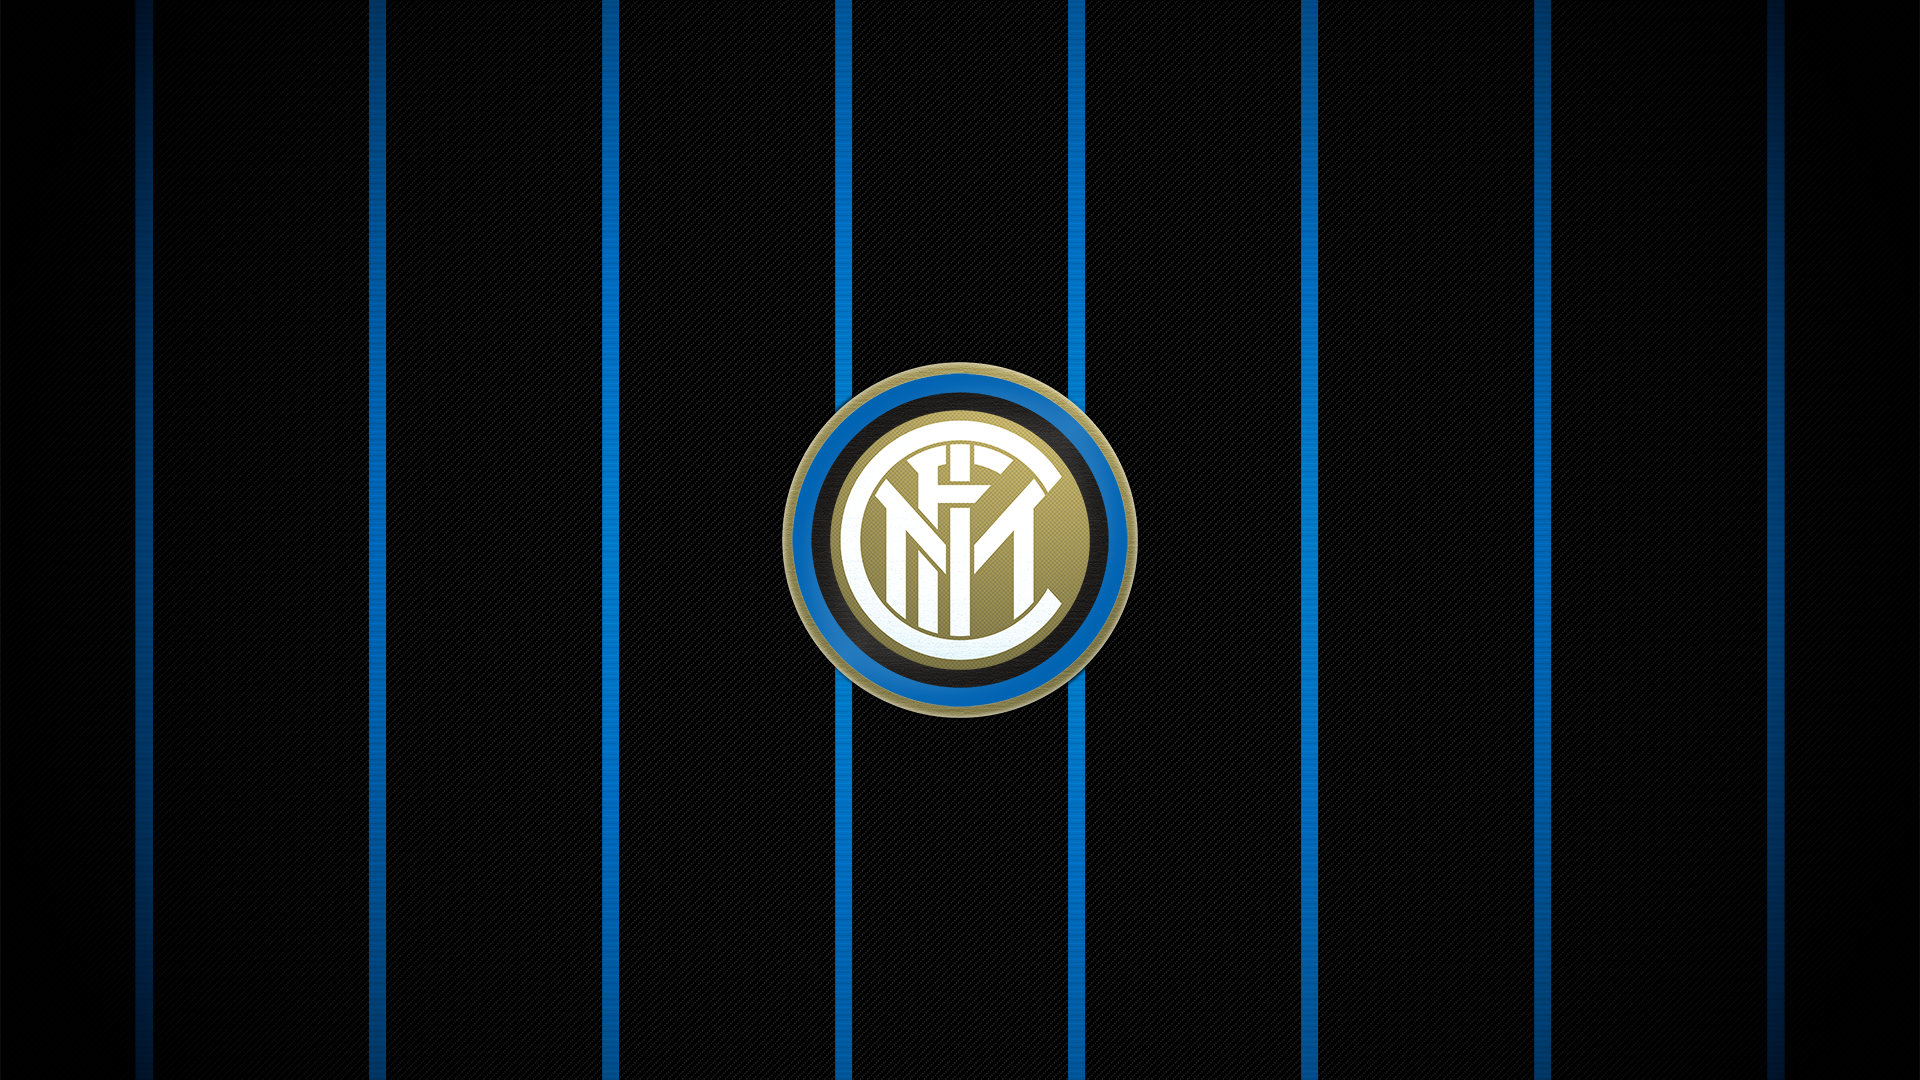 Inter Milan Wallpapers Top Free Inter Milan Backgrounds Wallpaperaccess